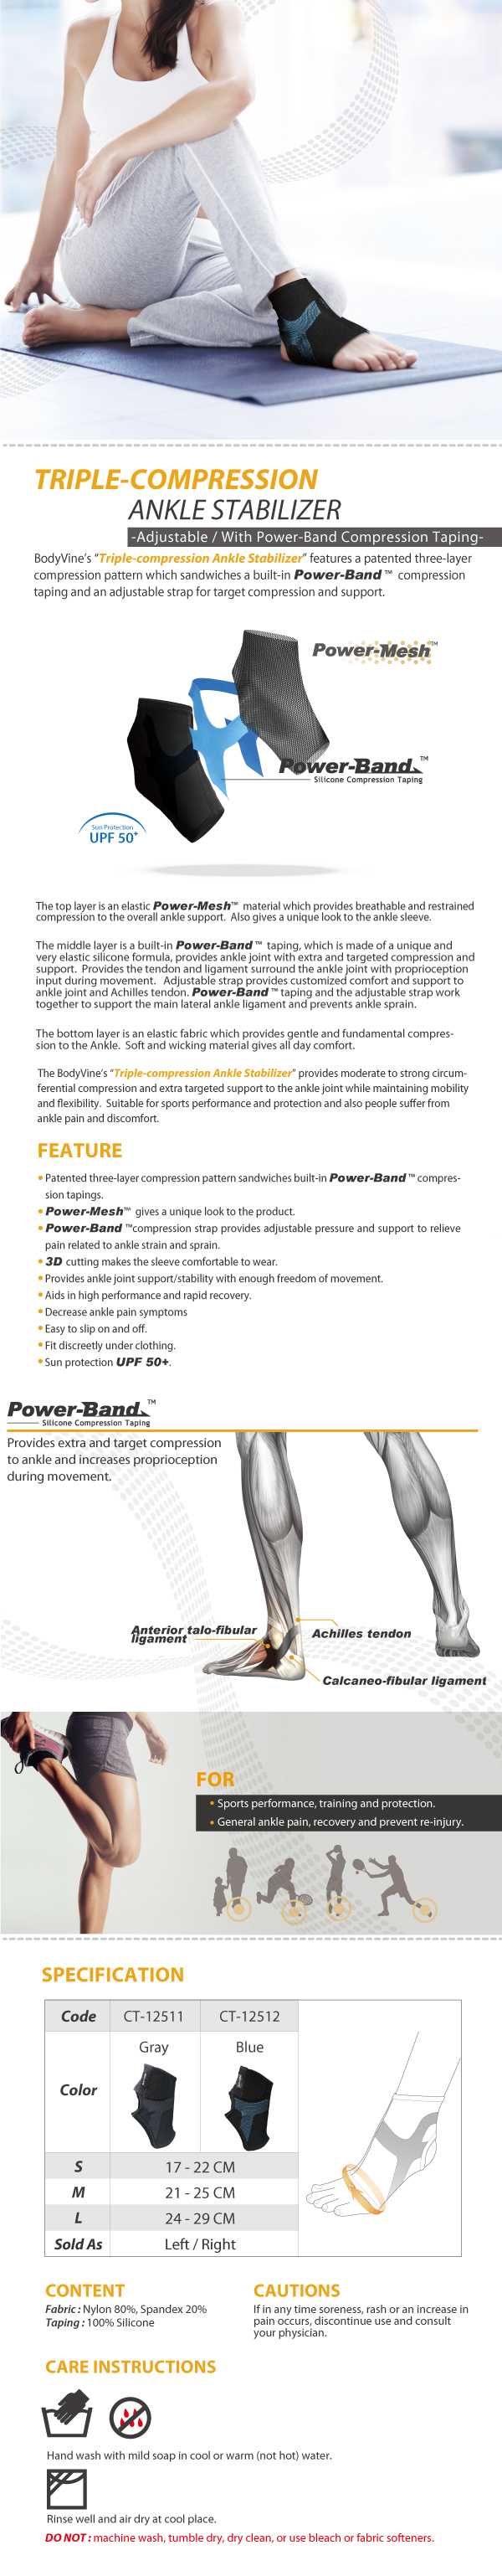 Triple-Compression-Ankle-Stabilizer_Power-Band-Compression-Taping